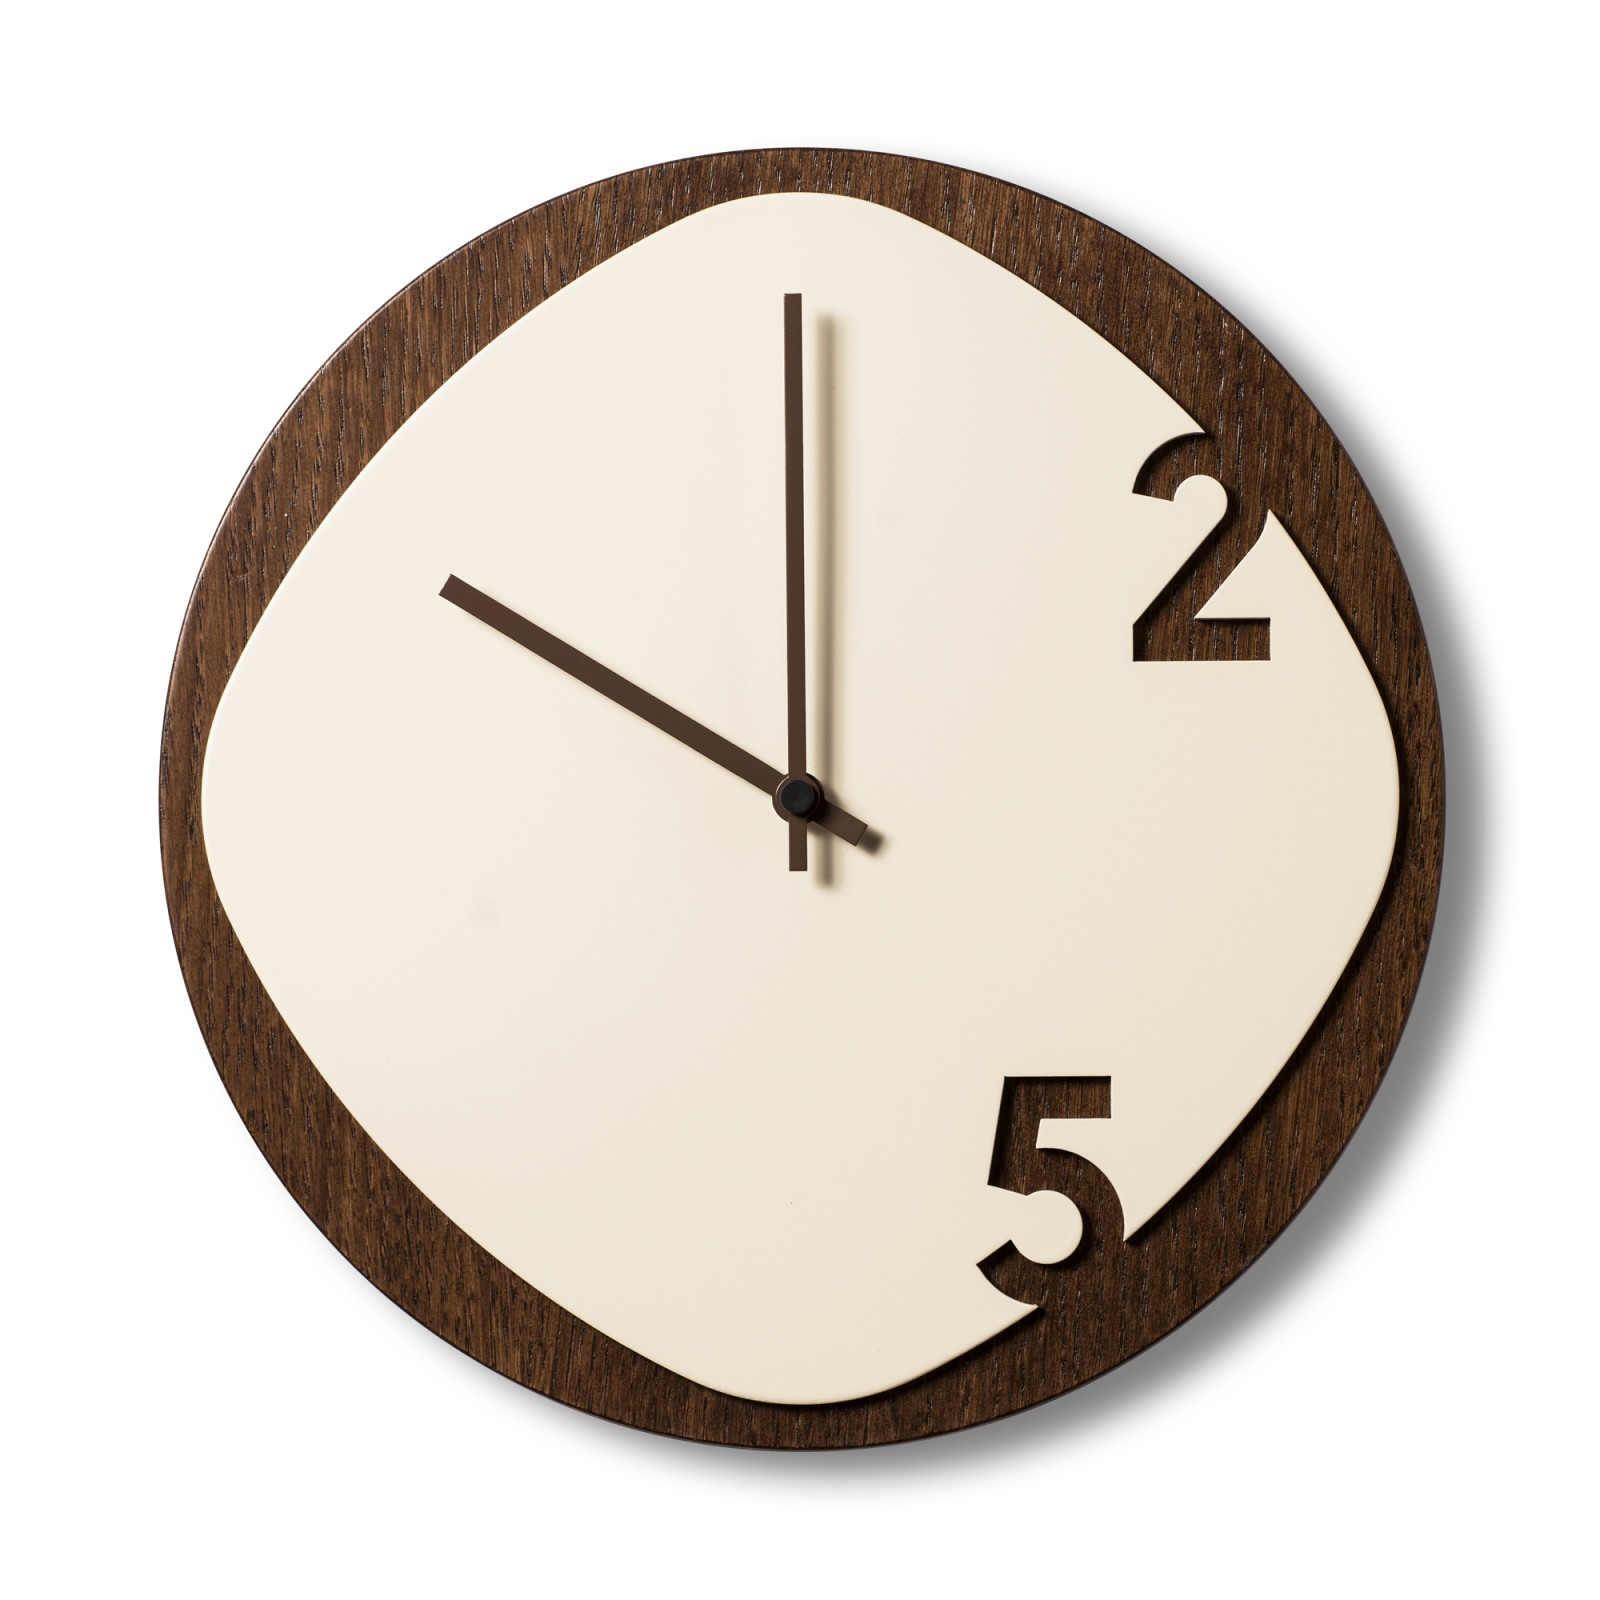 Clock25 brown / beige